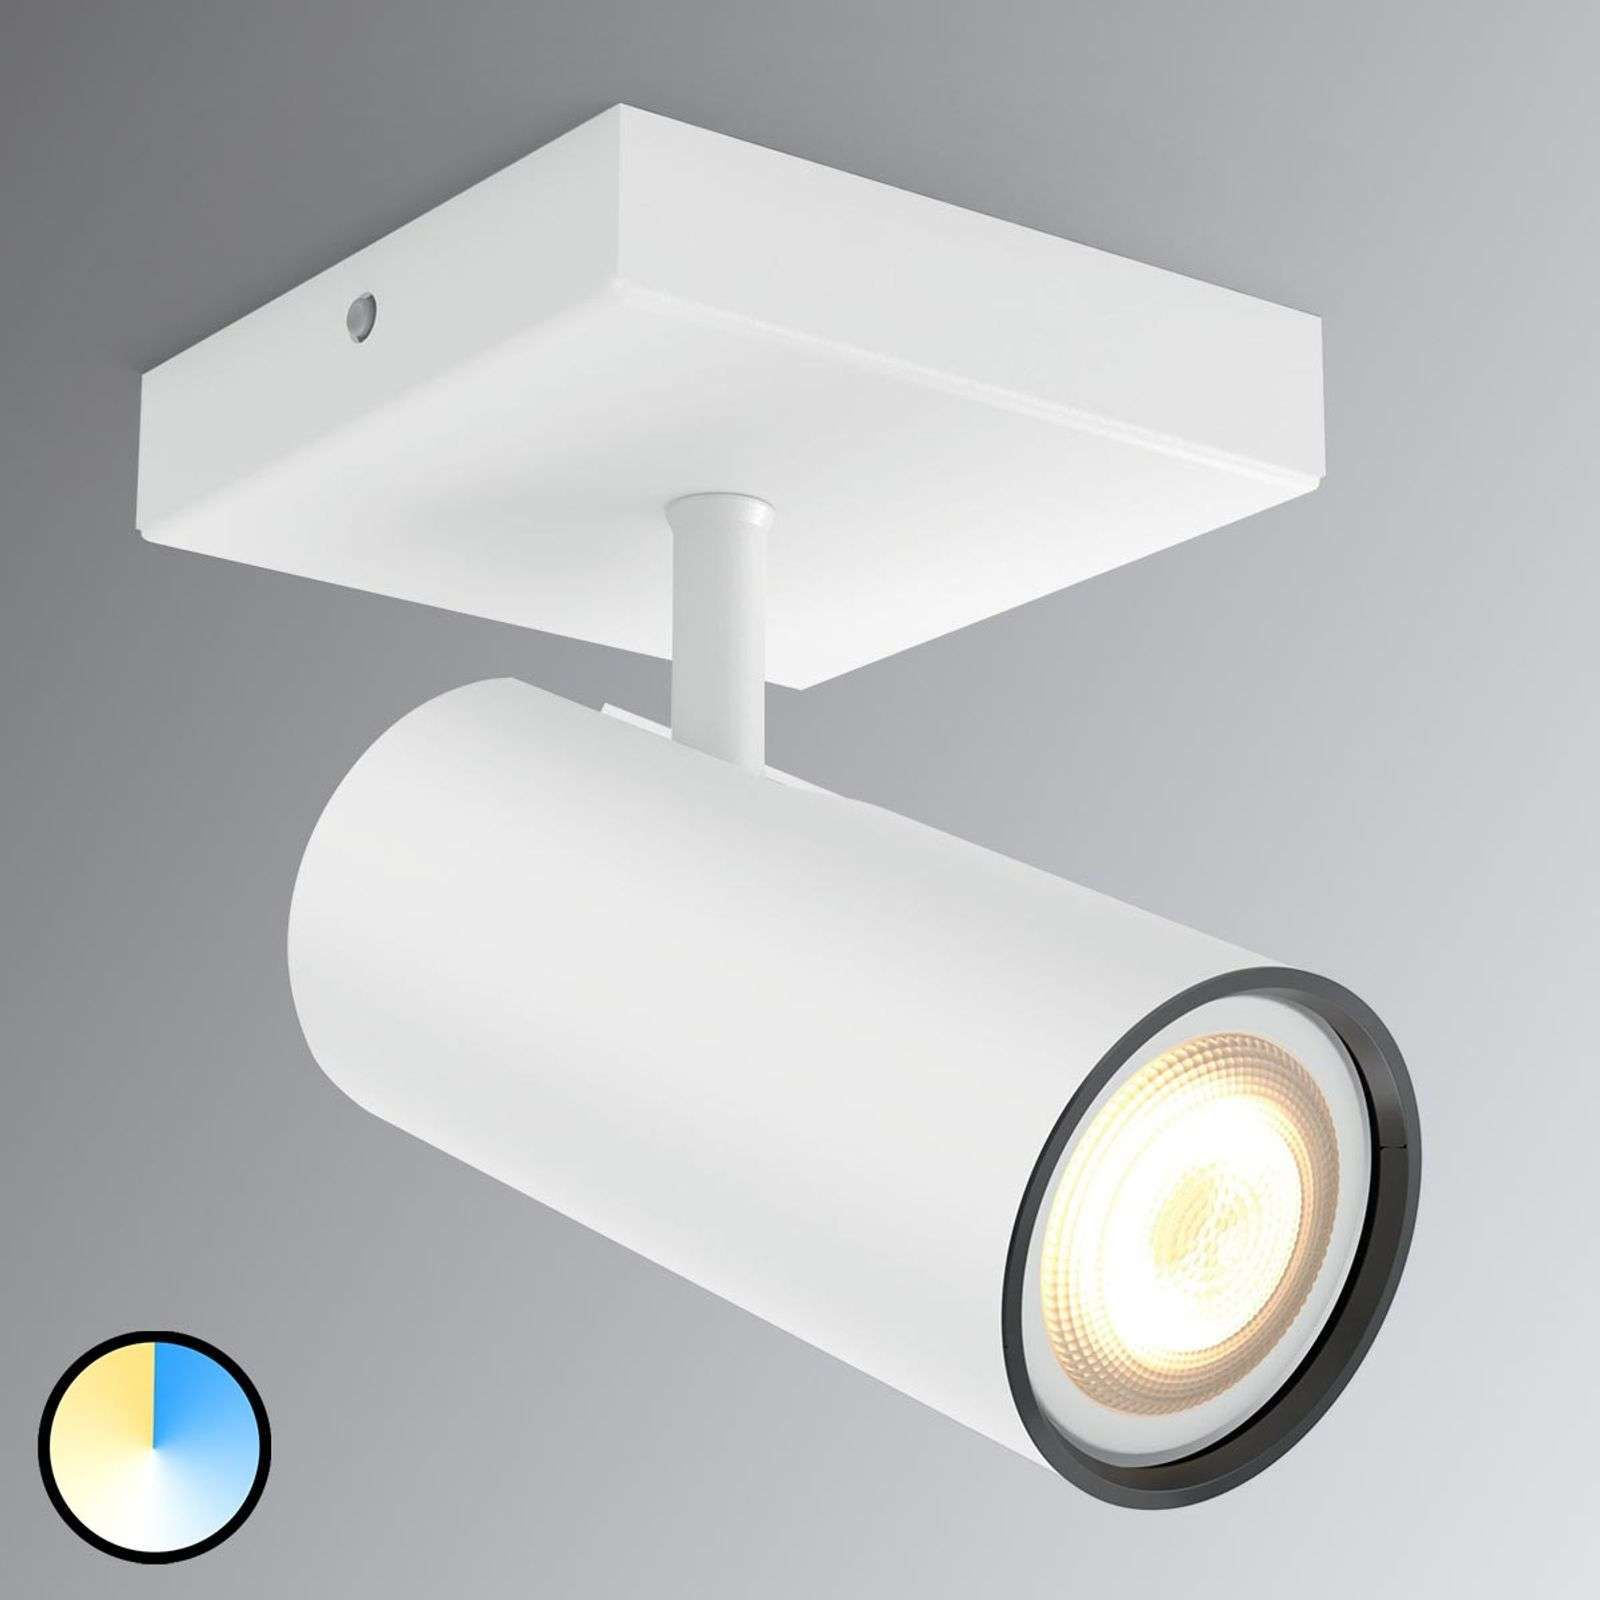 Philips Hue Buratto Led Spot Weiss 1flammig In 2020 Led Plafondlamp Lampen